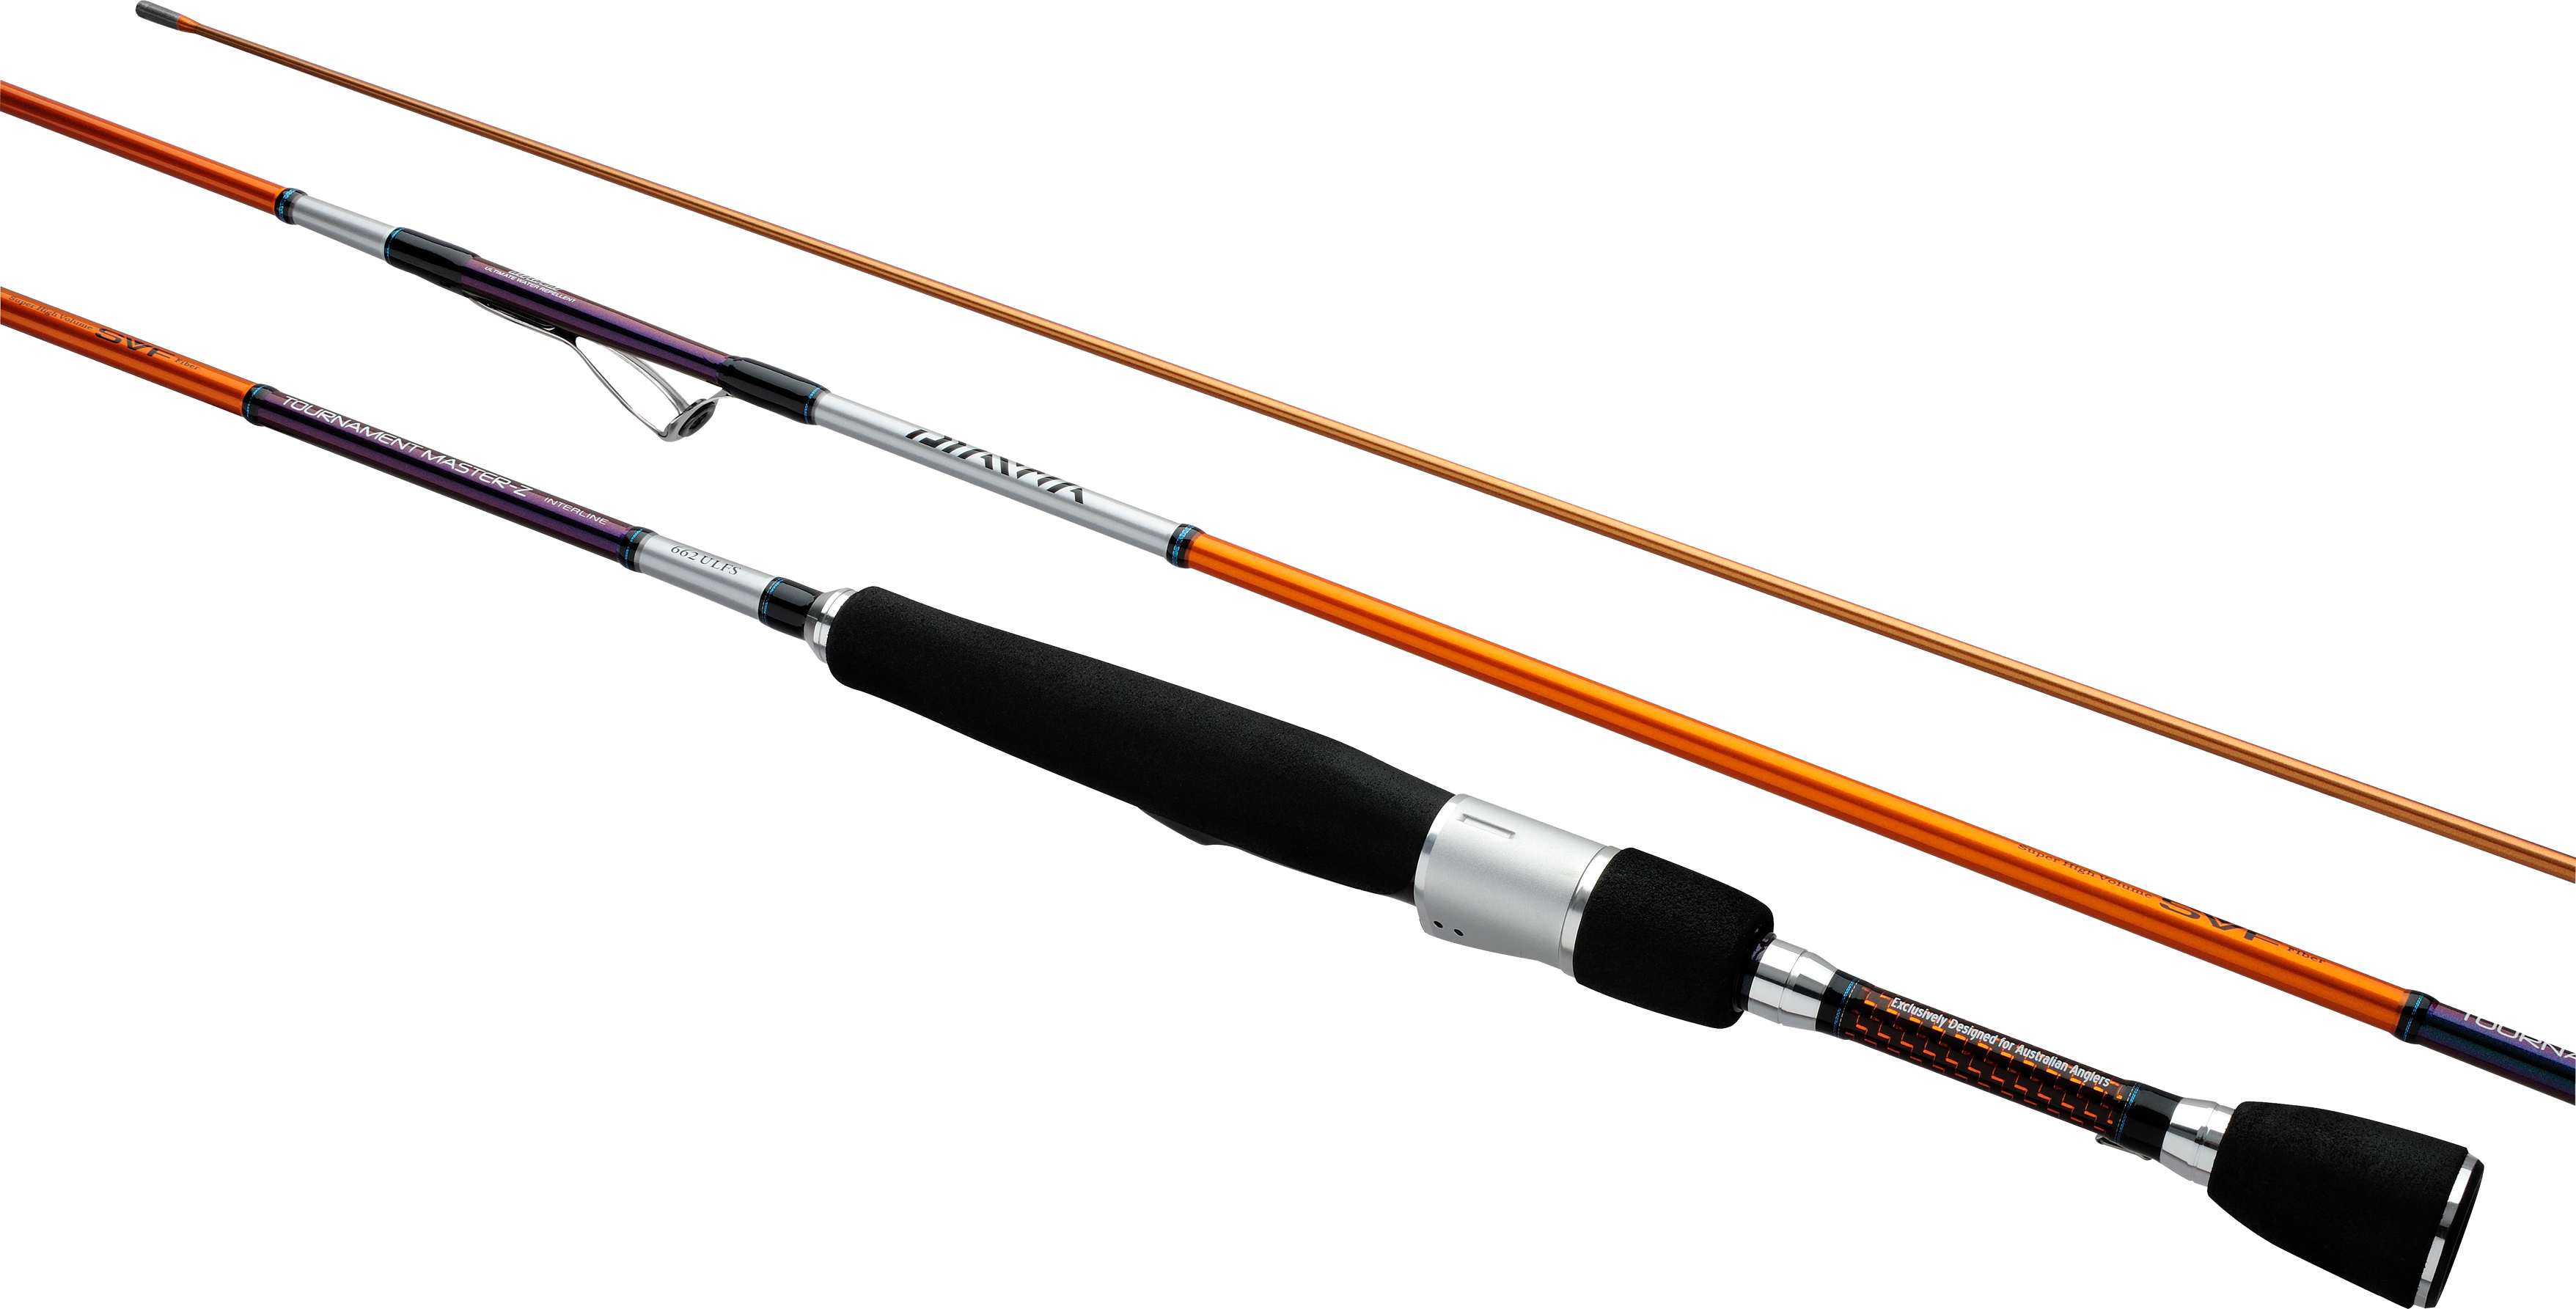 3513x1785 Fishing Pole Png Images Free Download, Fishing Rod Png